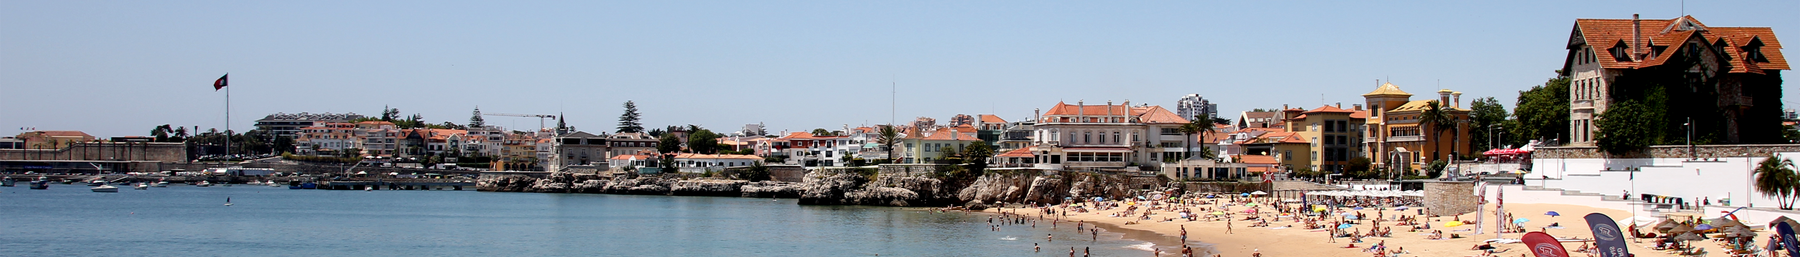 Cascais Wikivoyage Header Bjarne Henning Kvaale.png